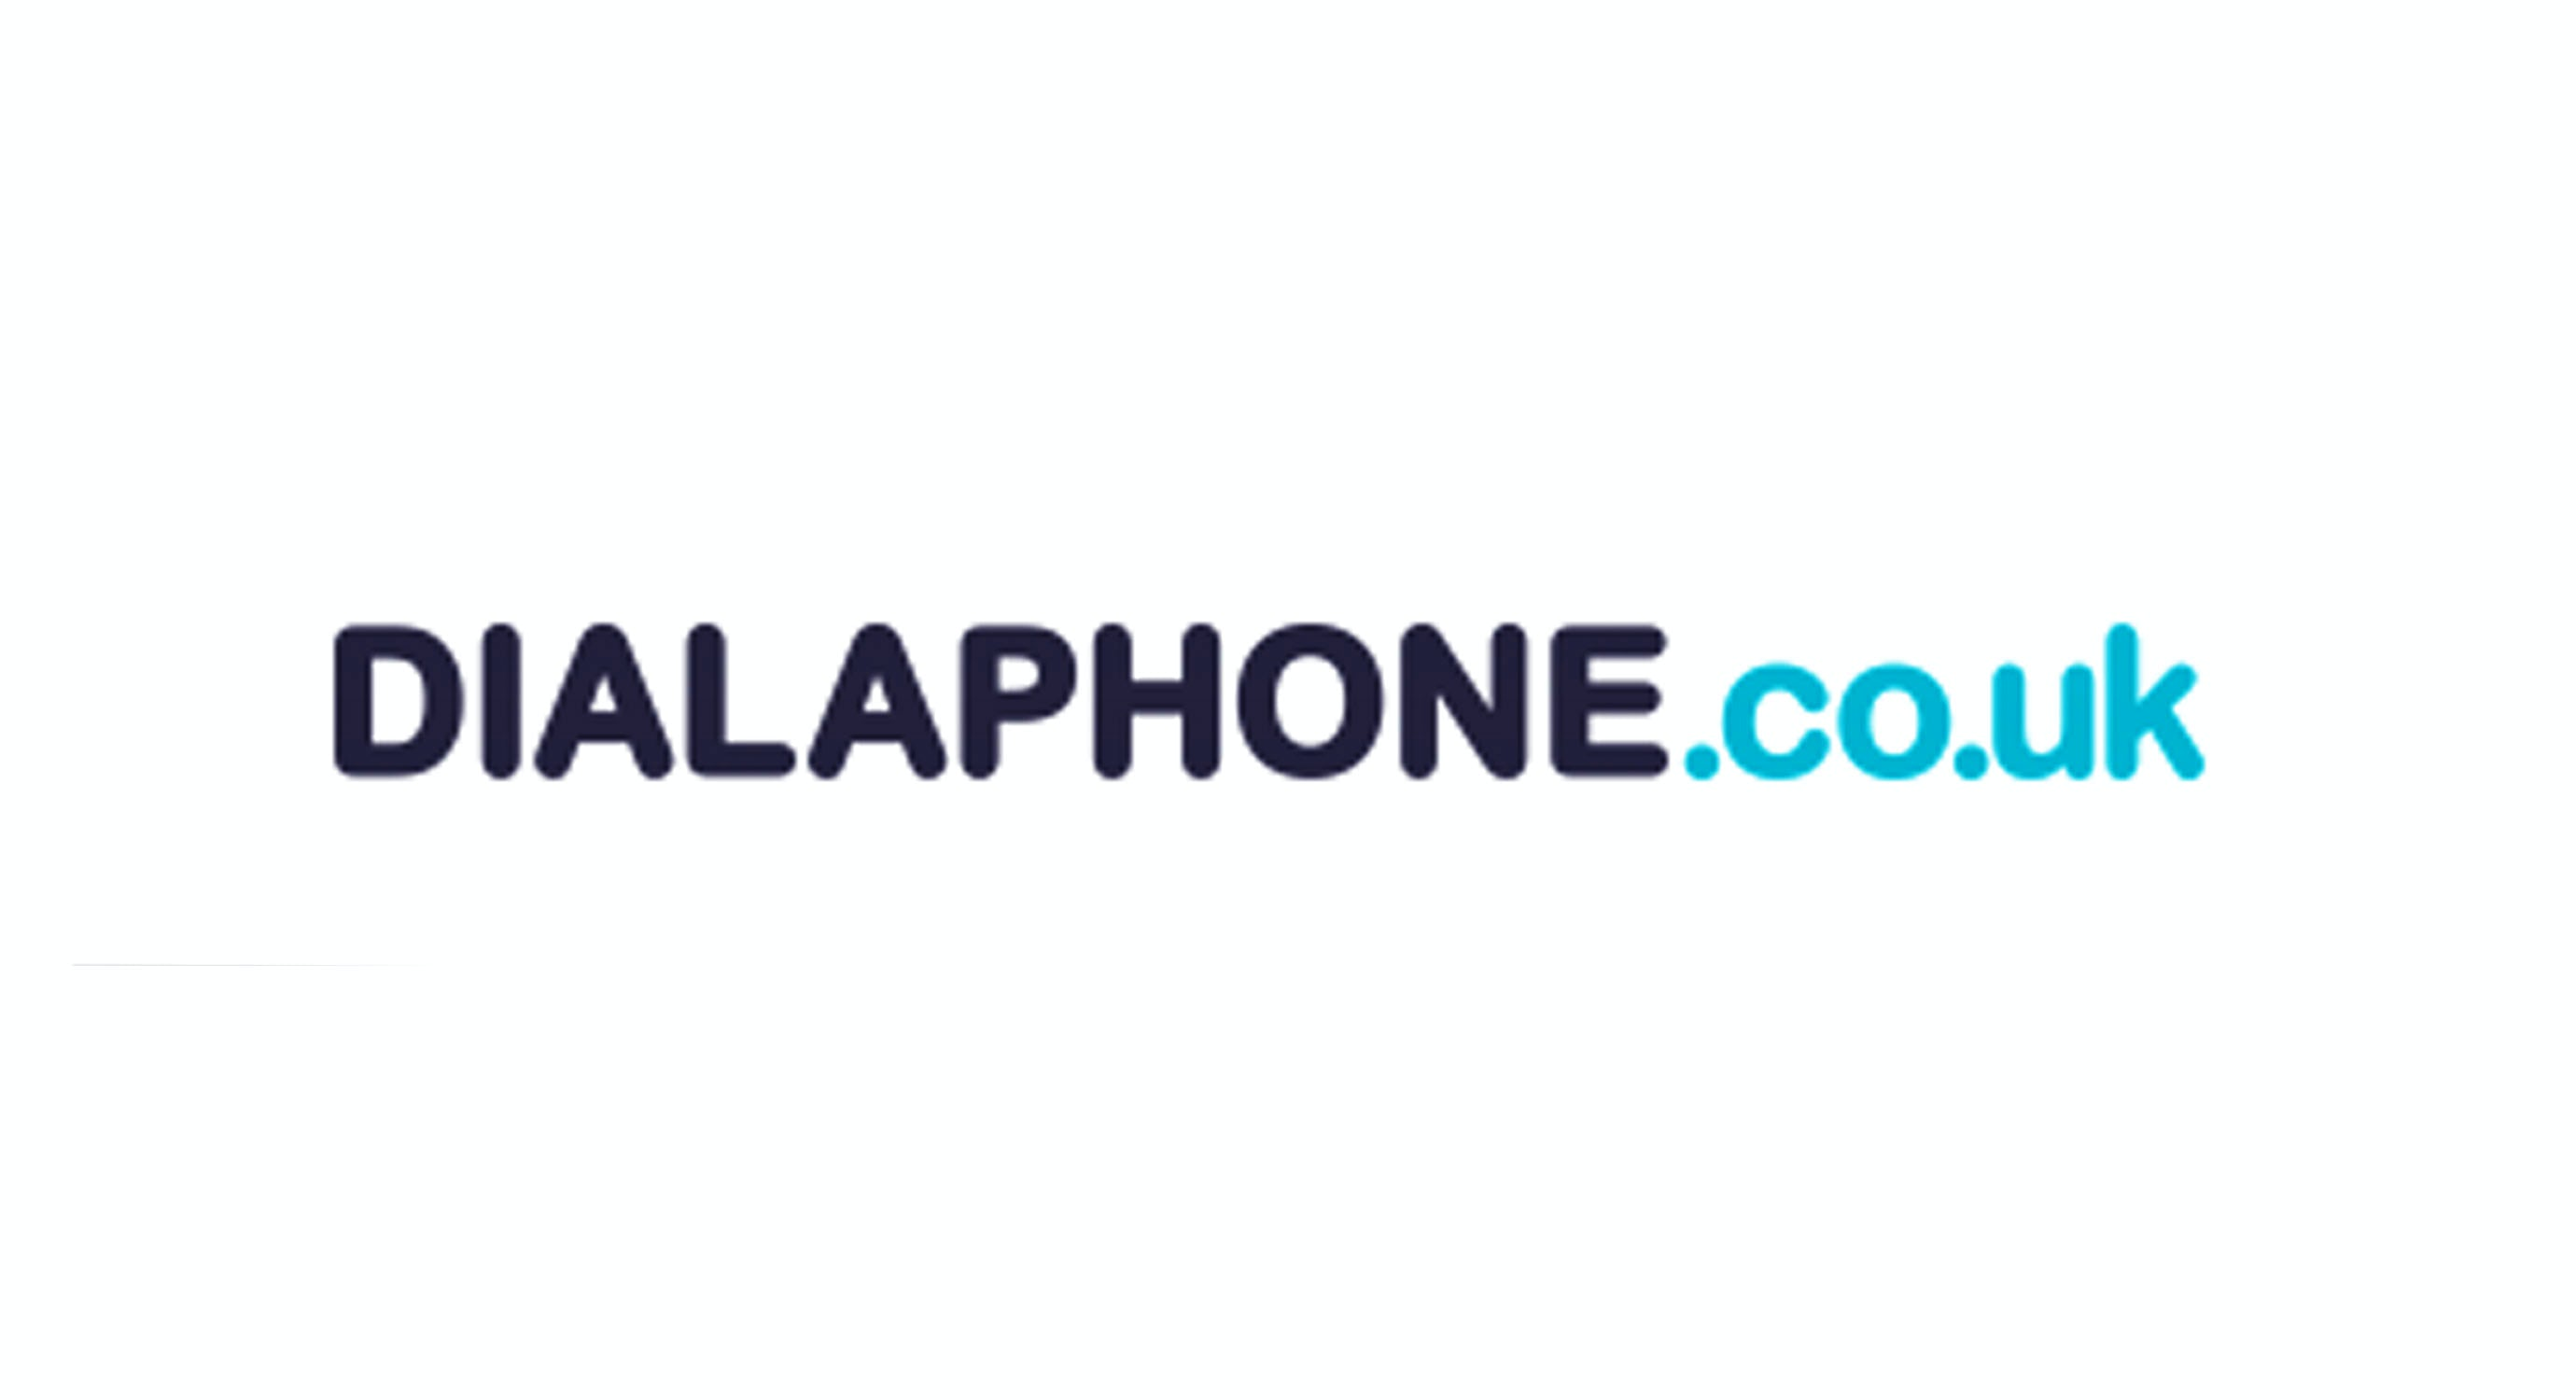 Dialaphone Review - The 2020 Guide